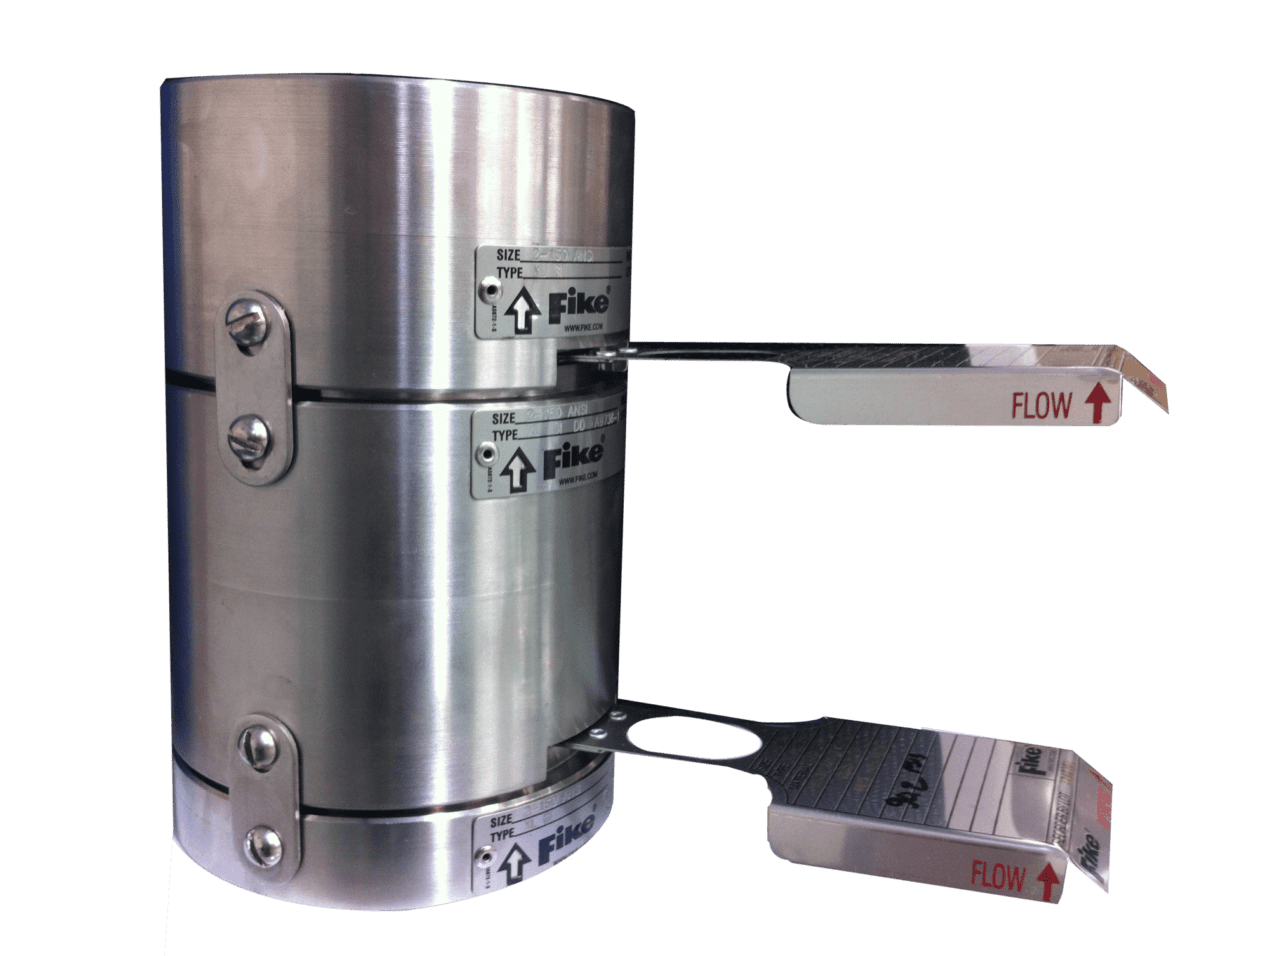 Double Disc Assembly for applications with double rupture disc installations